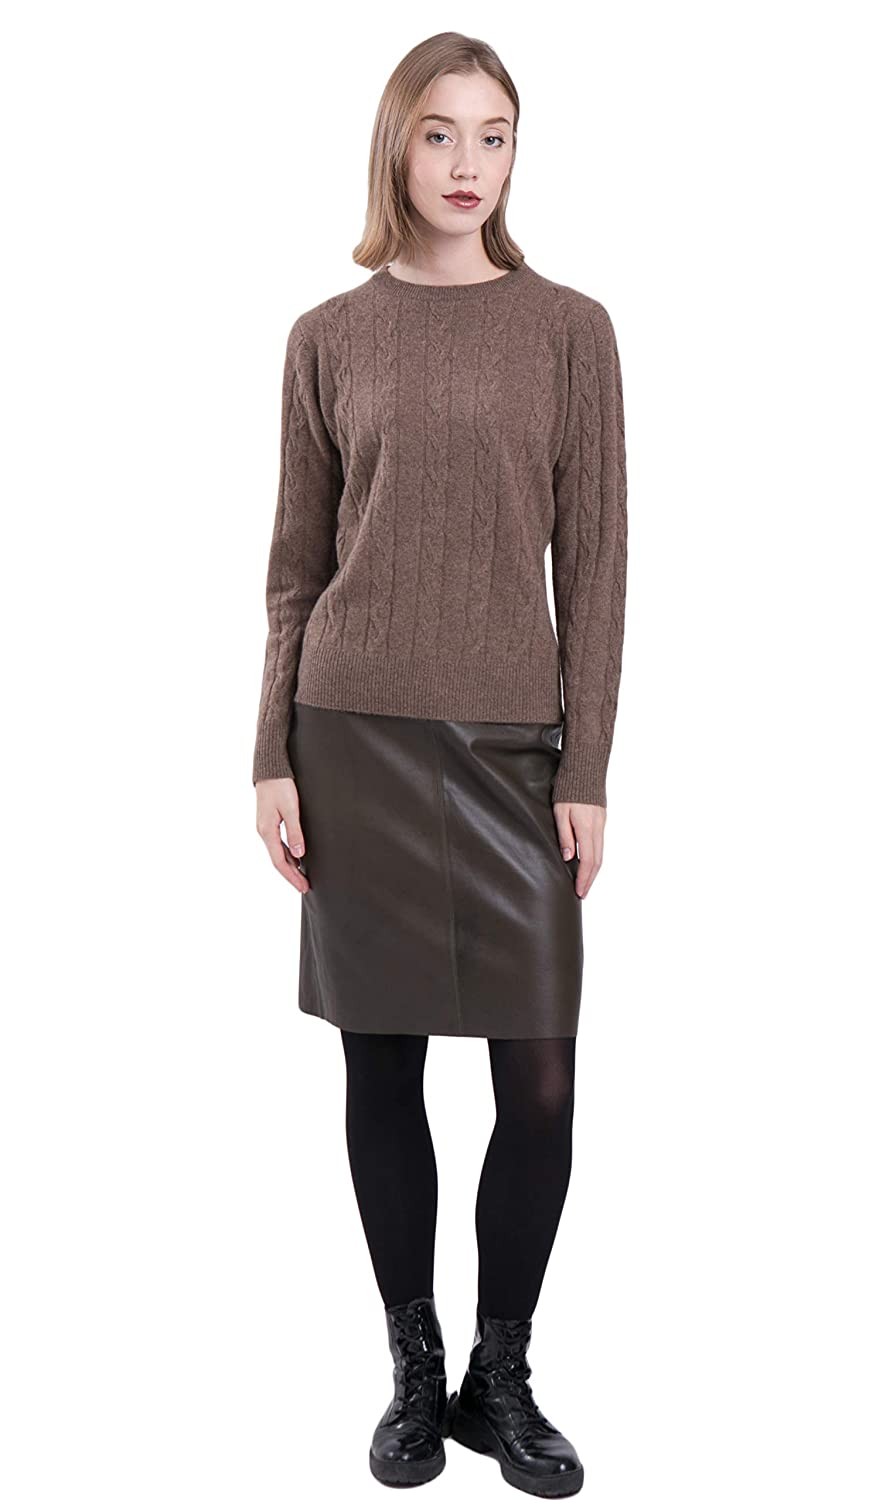 LEBAC Women 100/% Cashmere Crew Neck Sweater Cable Knit Long Sleeve Pullover